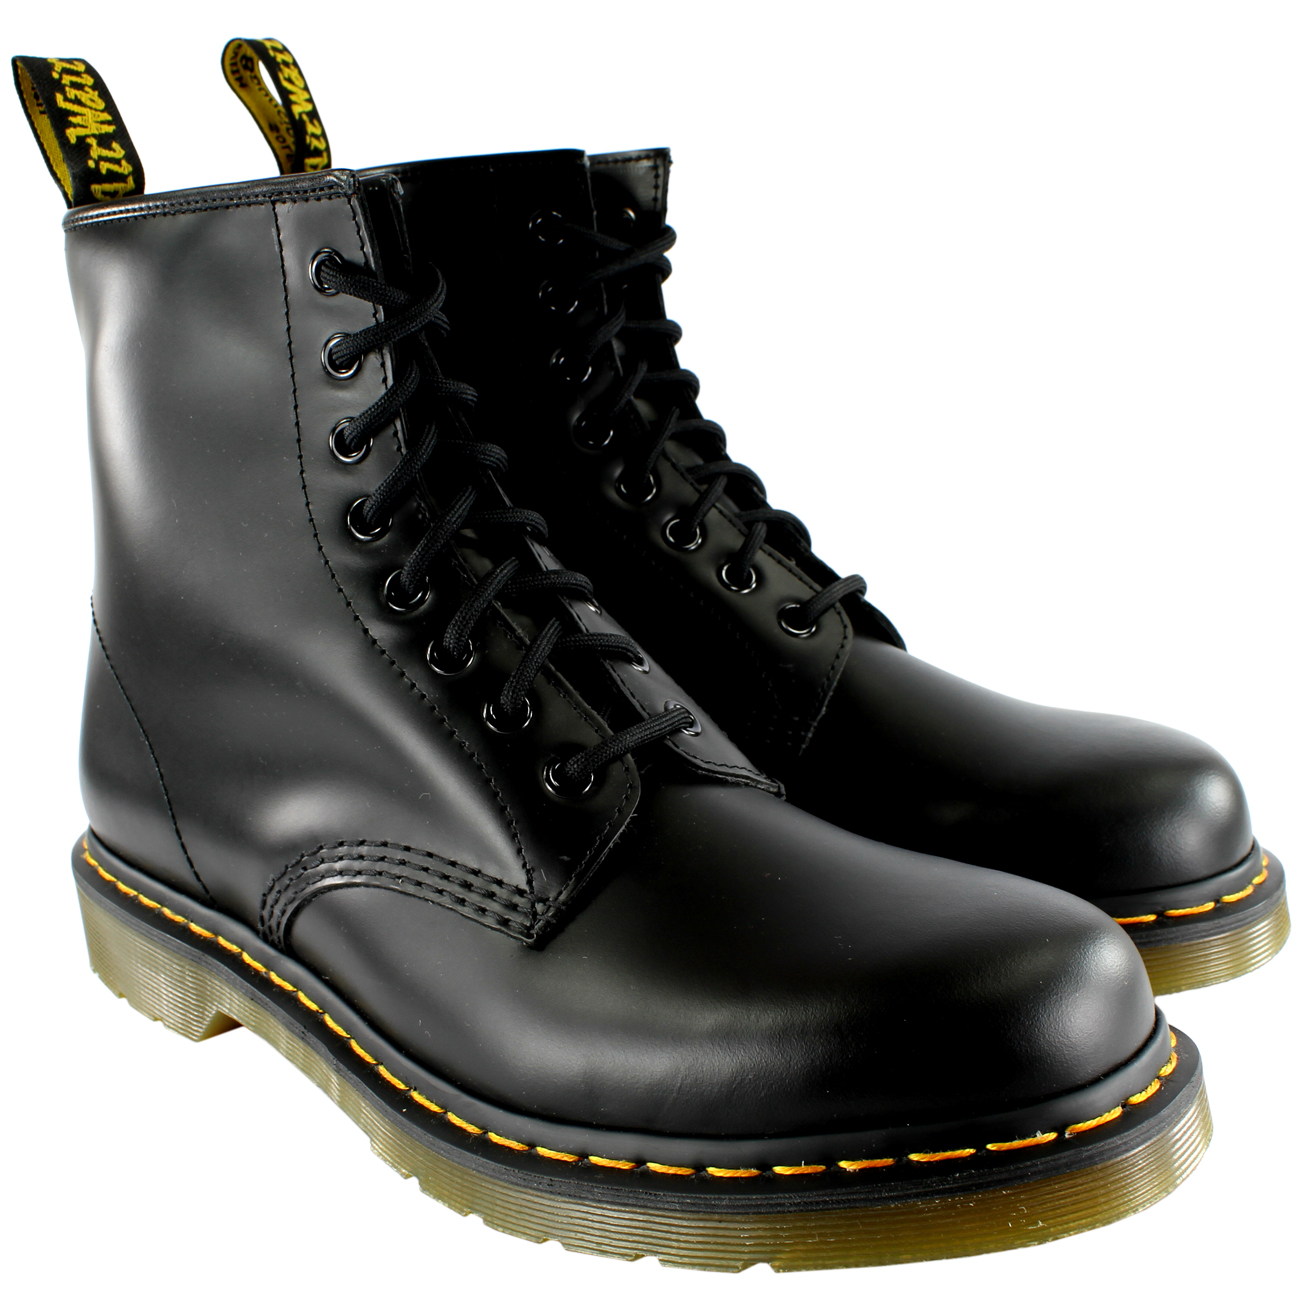 Dr Martens 1460 Ankle Boots